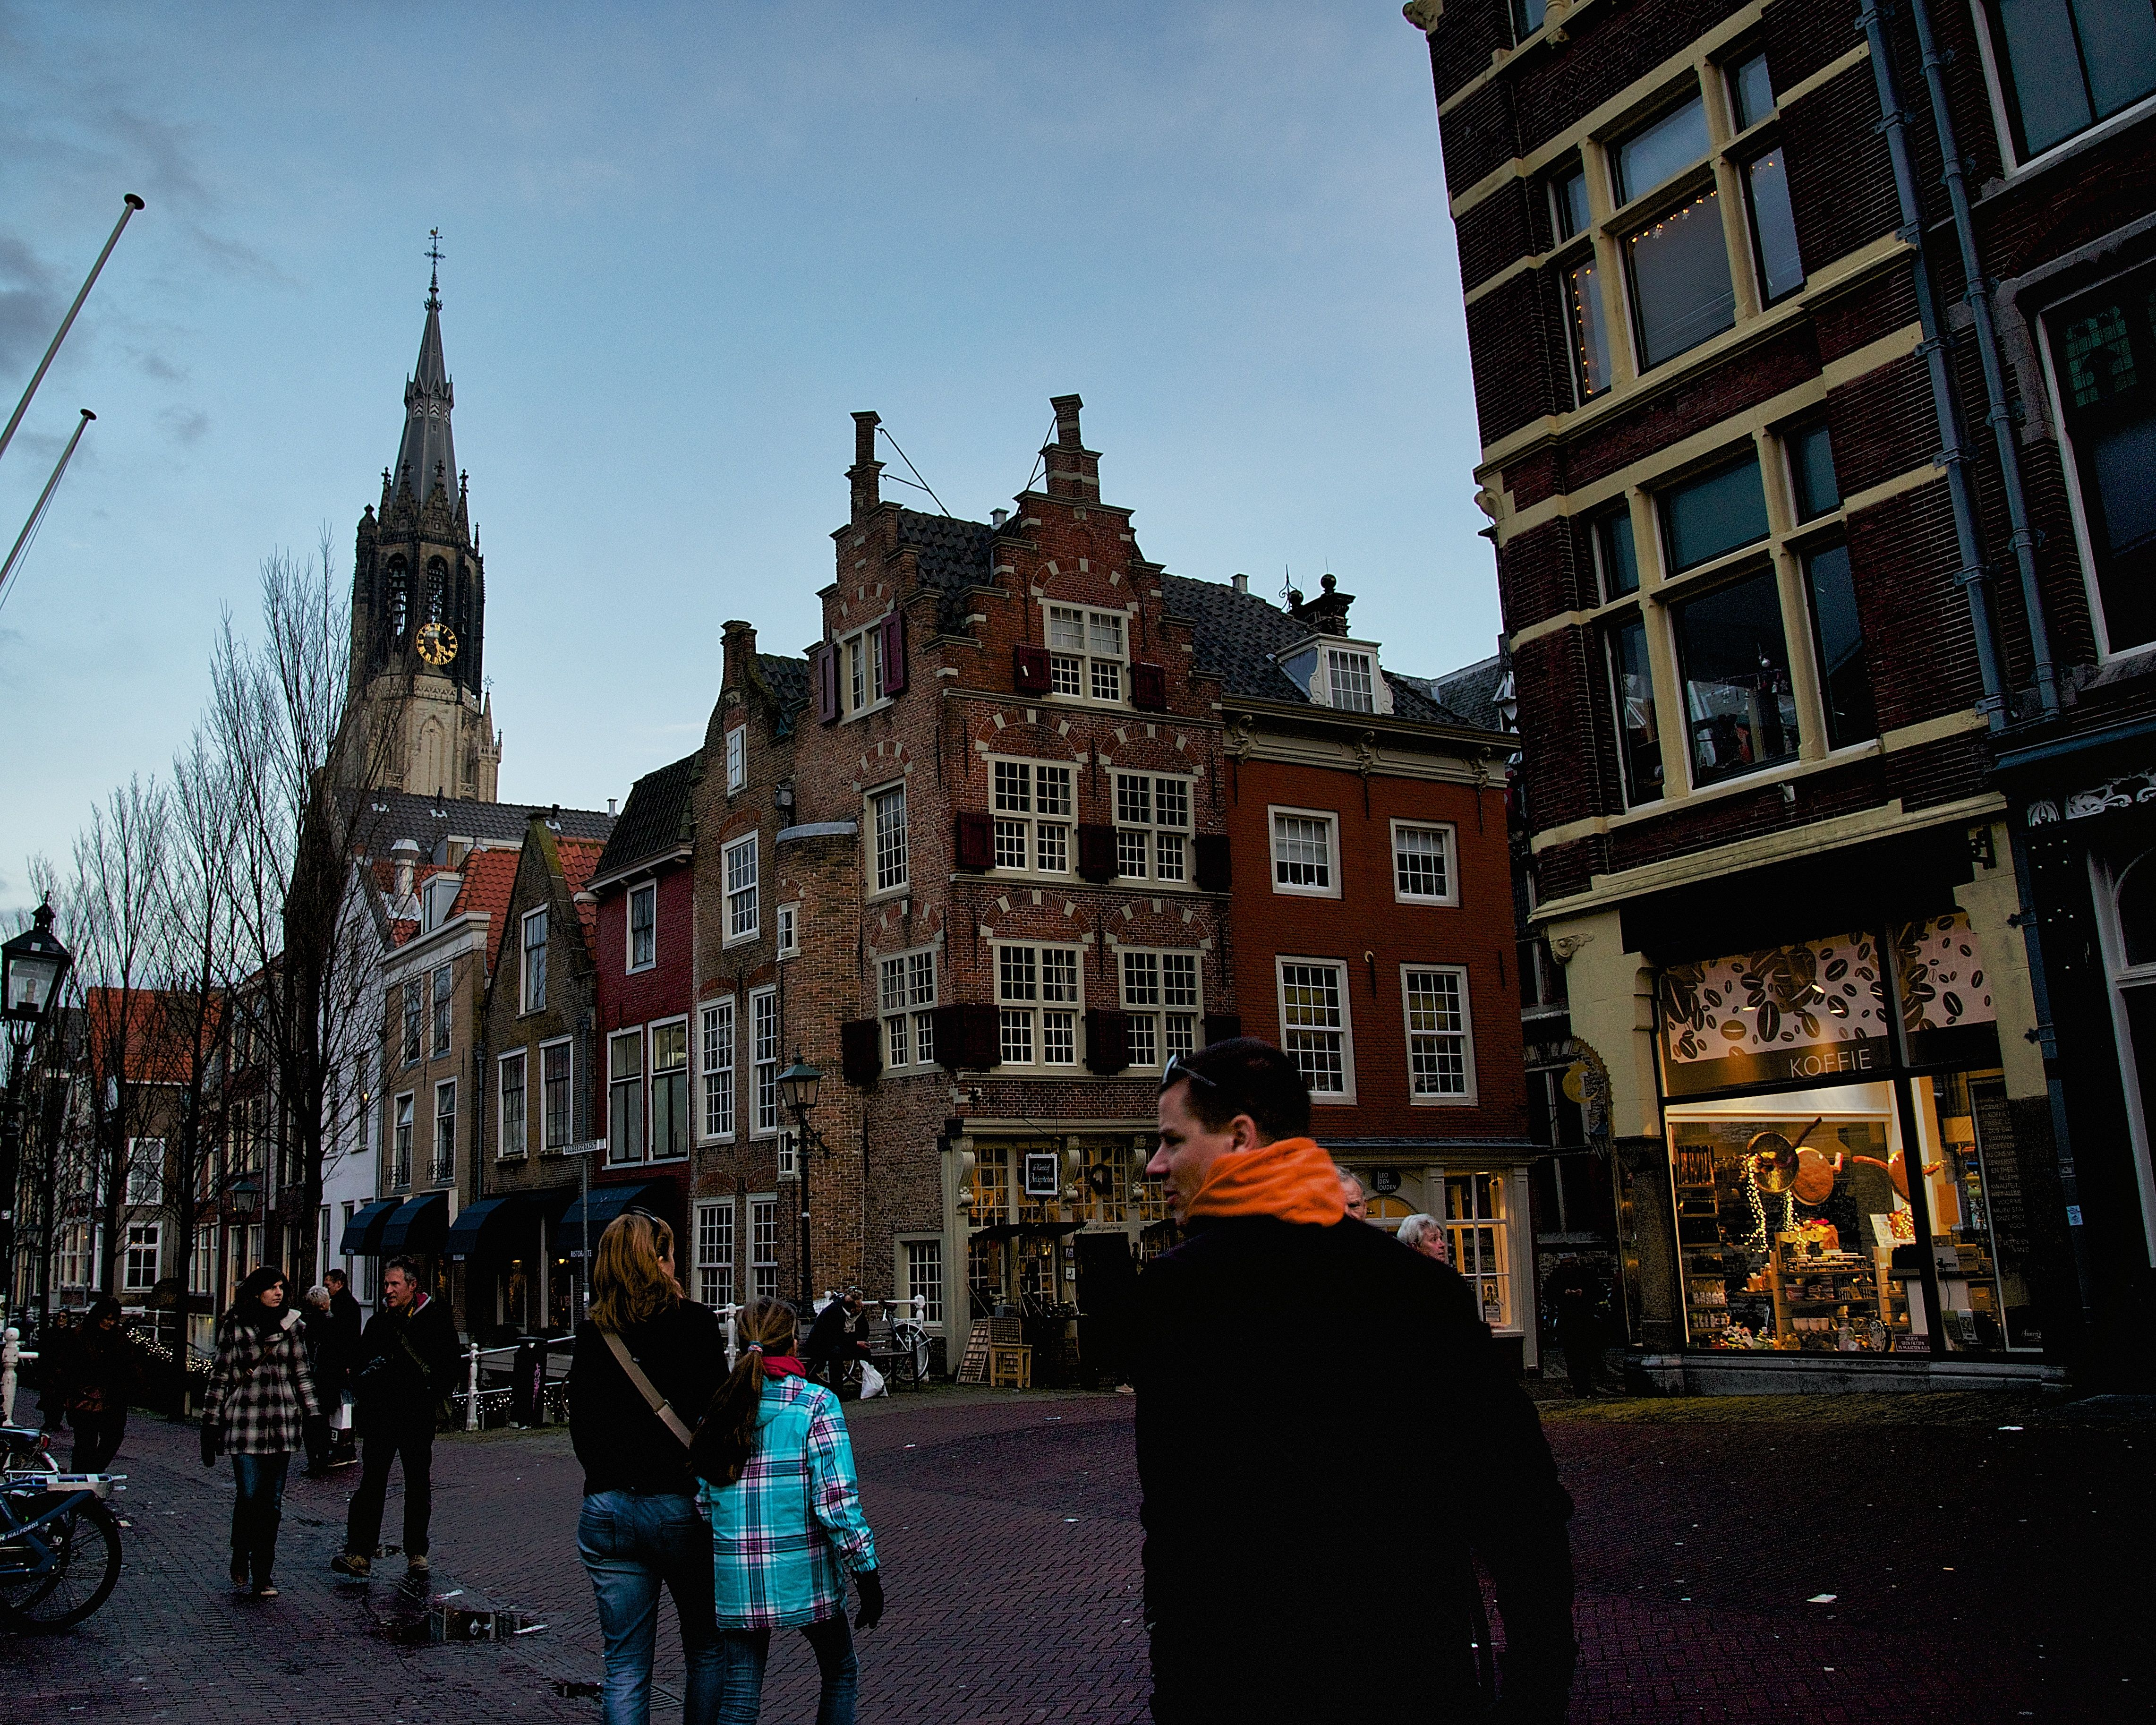 If we had to choose the one place in the Netherlands that we think of as quintessential Holland, it would have to be Delft. Follow this link to find out more about Delft.  http://mikestravelguide.com/one-of-the-many-canals-in-delft/